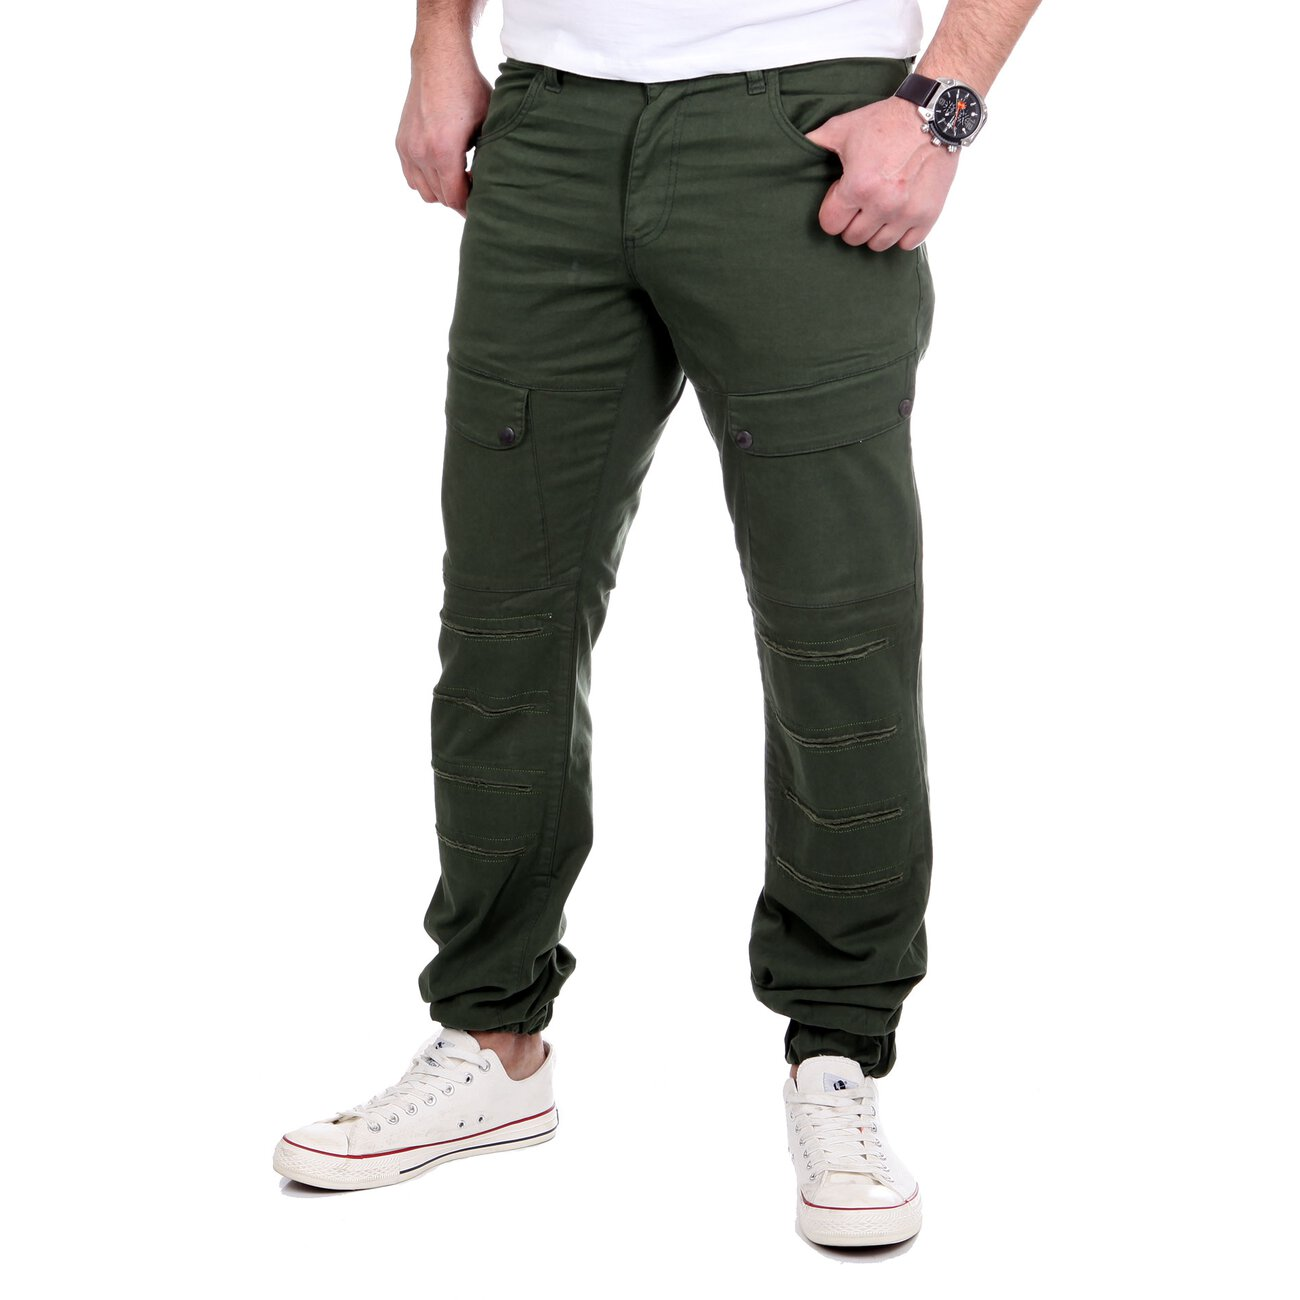 reslad herren jogger chino hose mit taschen rs 2057. Black Bedroom Furniture Sets. Home Design Ideas